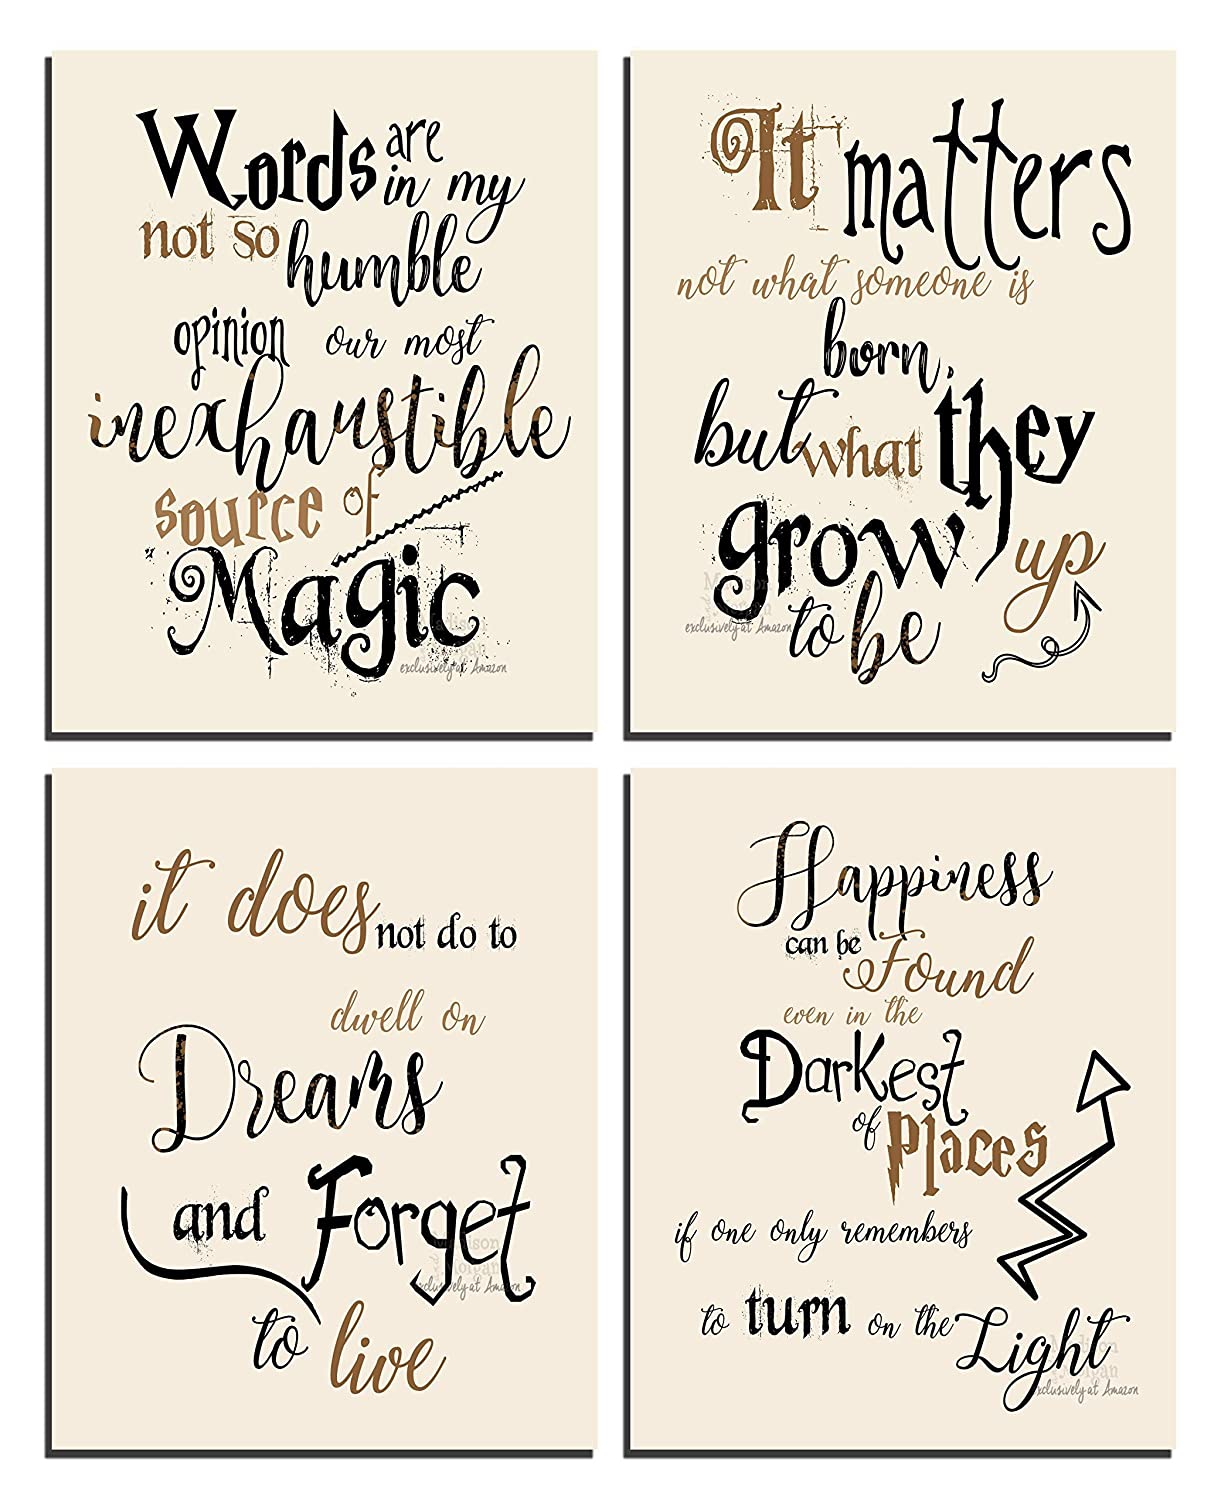 Wizard Art - Quotes and Sayings Art Prints | Set of Four Photos 8x10 Unframed | Unique Inspirational Wall Art - Great Gift for Wizarding World Fans